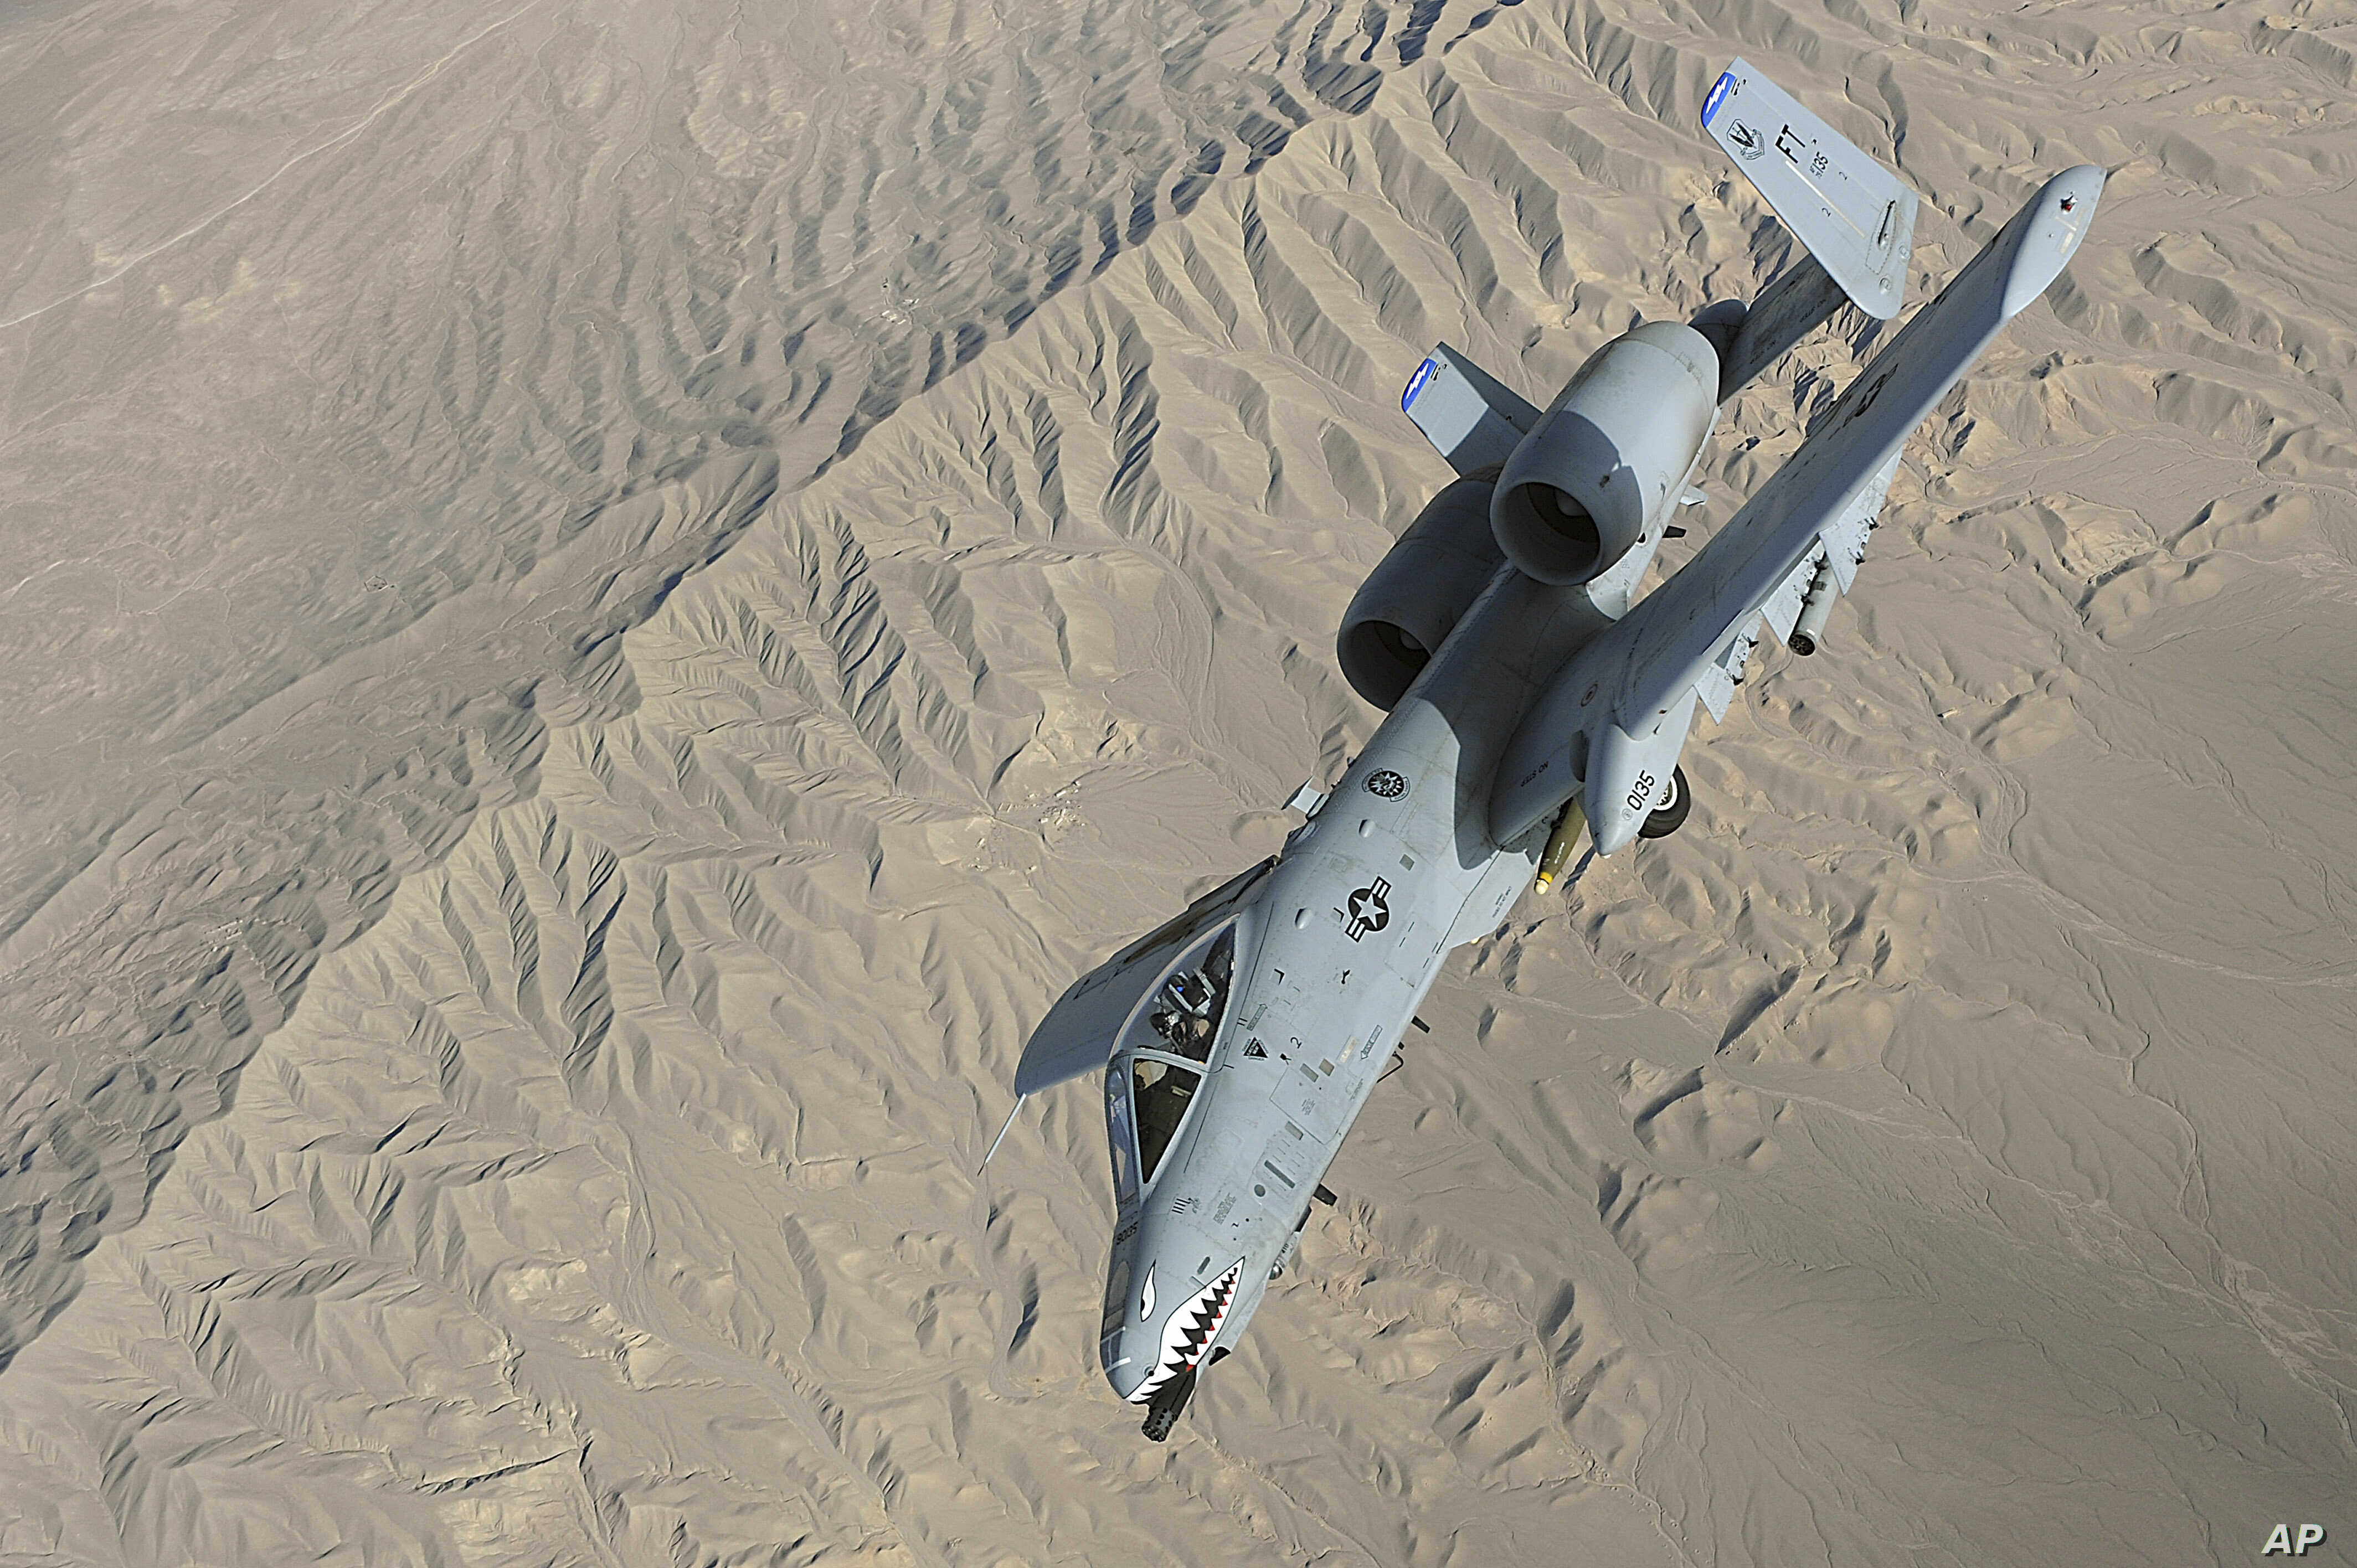 FILE - A U.S. Air Force Air Force A-10 Thunderbolt II in-flight over Afghanistan, Oct. 2008. (Photo by Staff Sgt. Aaron Allmon)